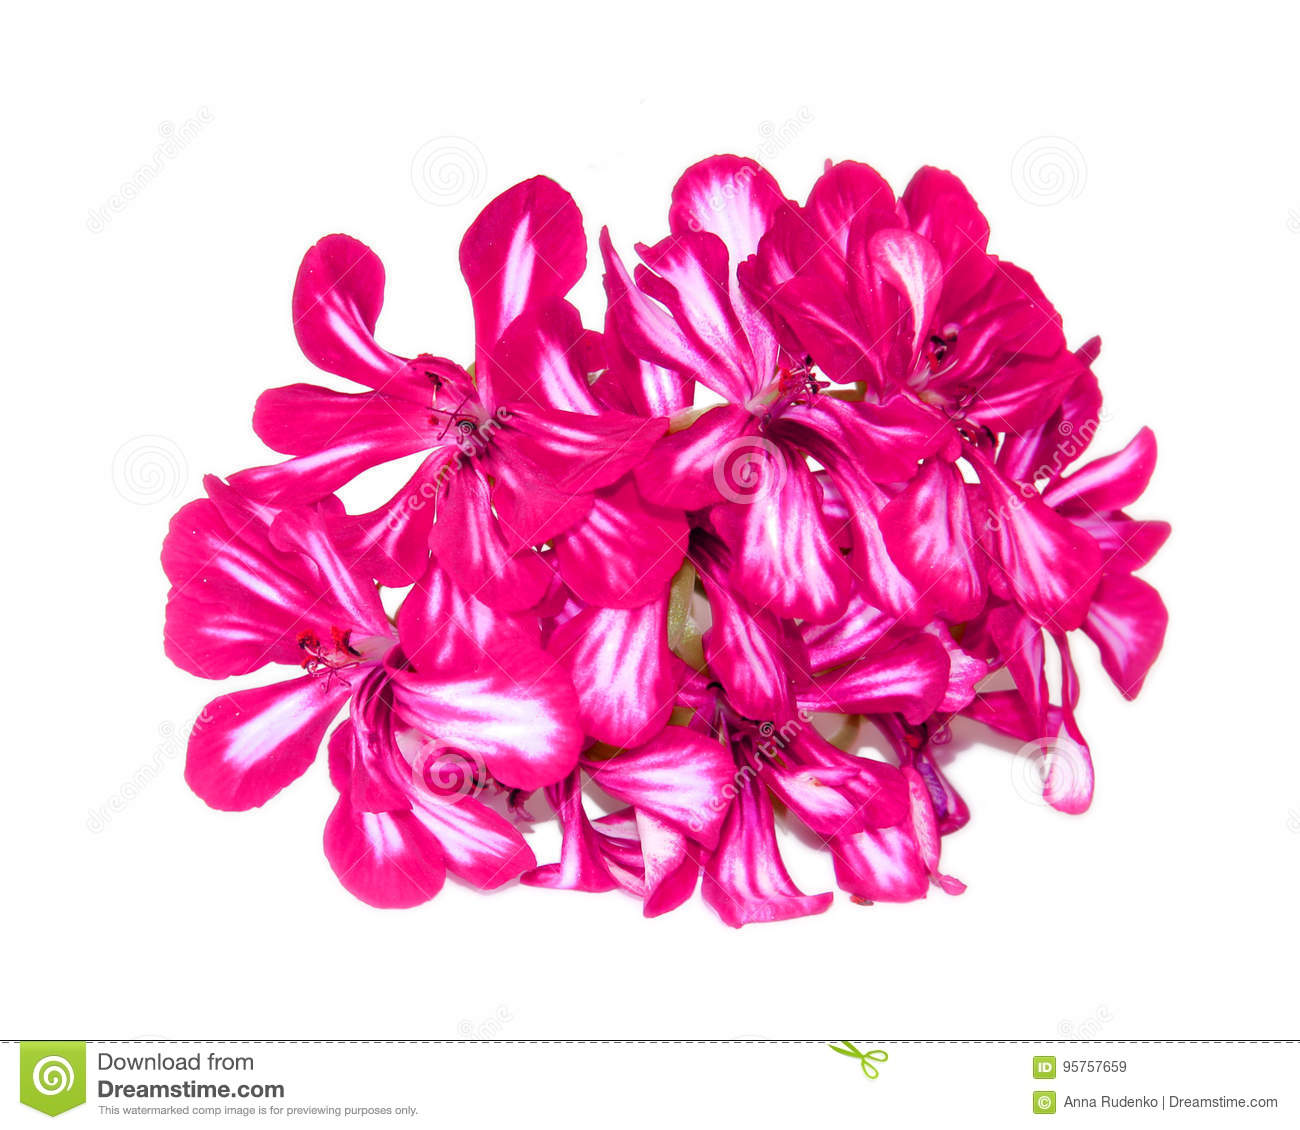 Terry red decorative geranium perspective, fresh delicate flower